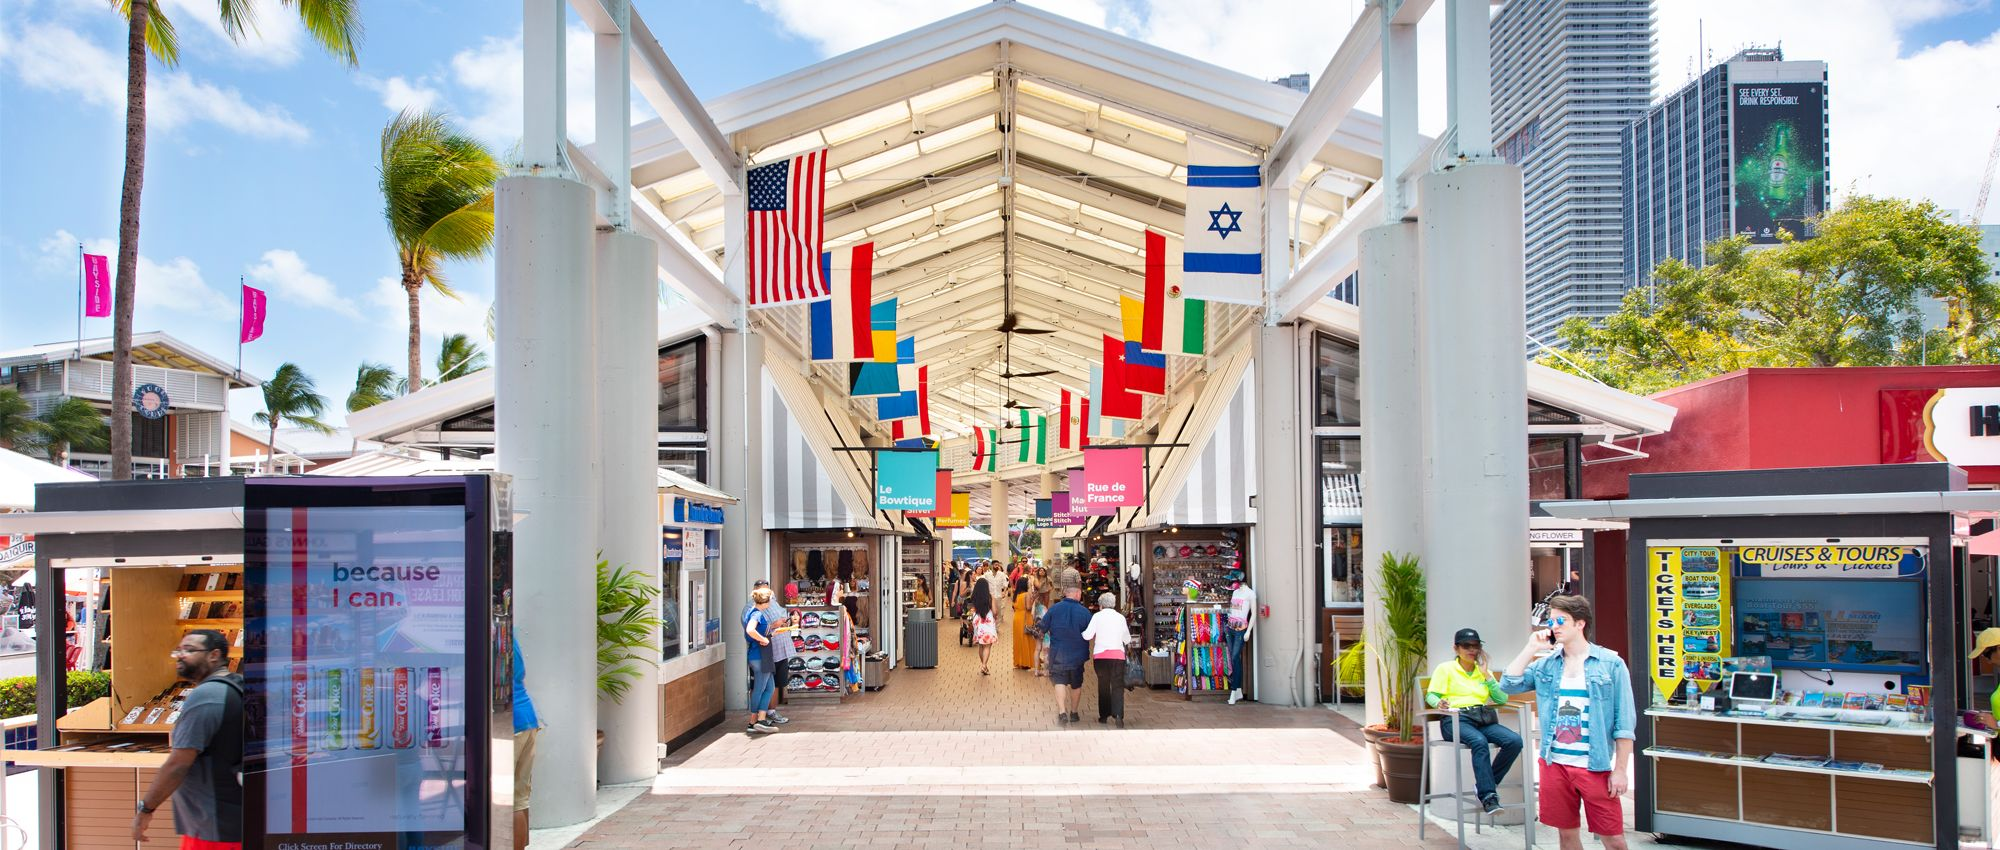 Bayside Marketplace | Best Shopping Mall in Miami ♥ Great